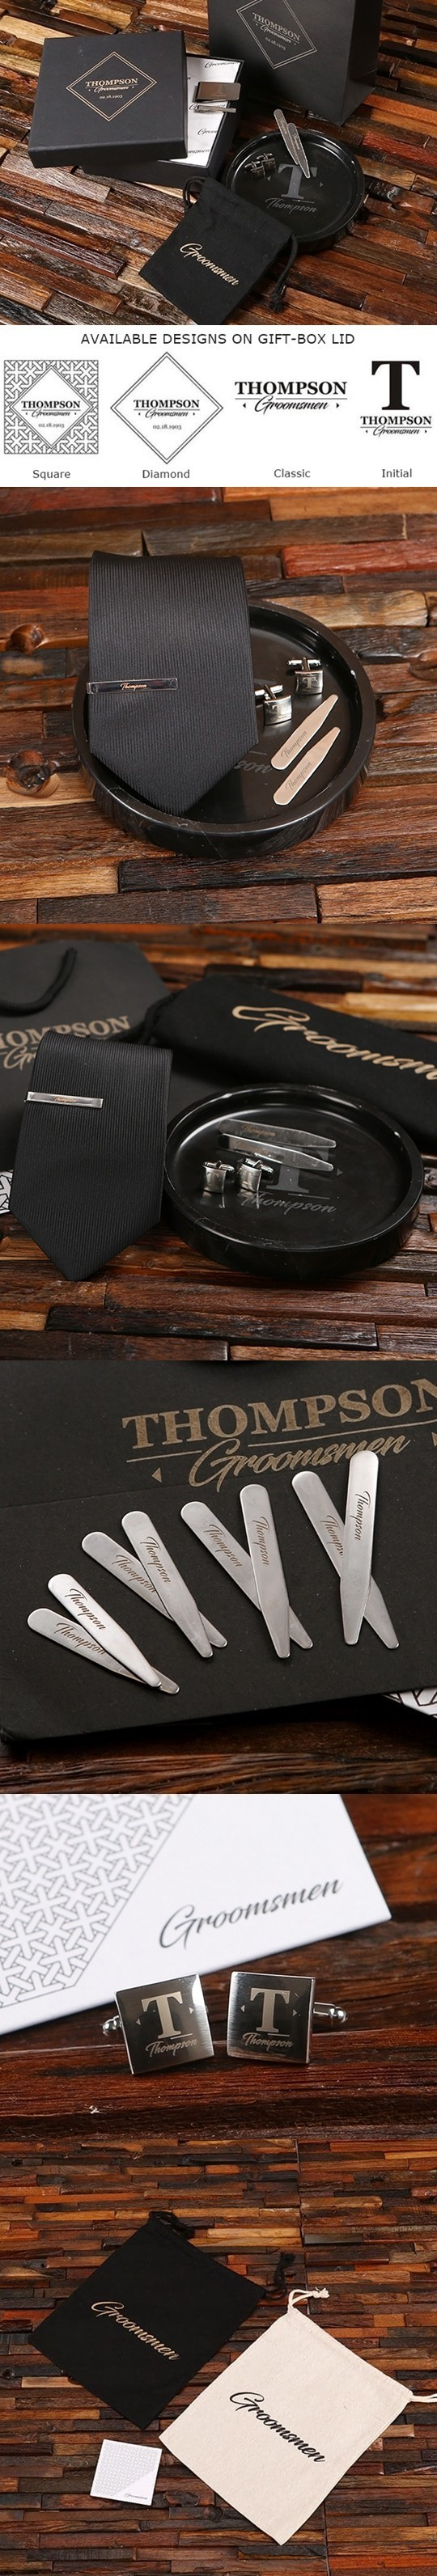 Personalized Tray, Tie, Tie Clip, Cuff Links and Collar Stays Gift-Set